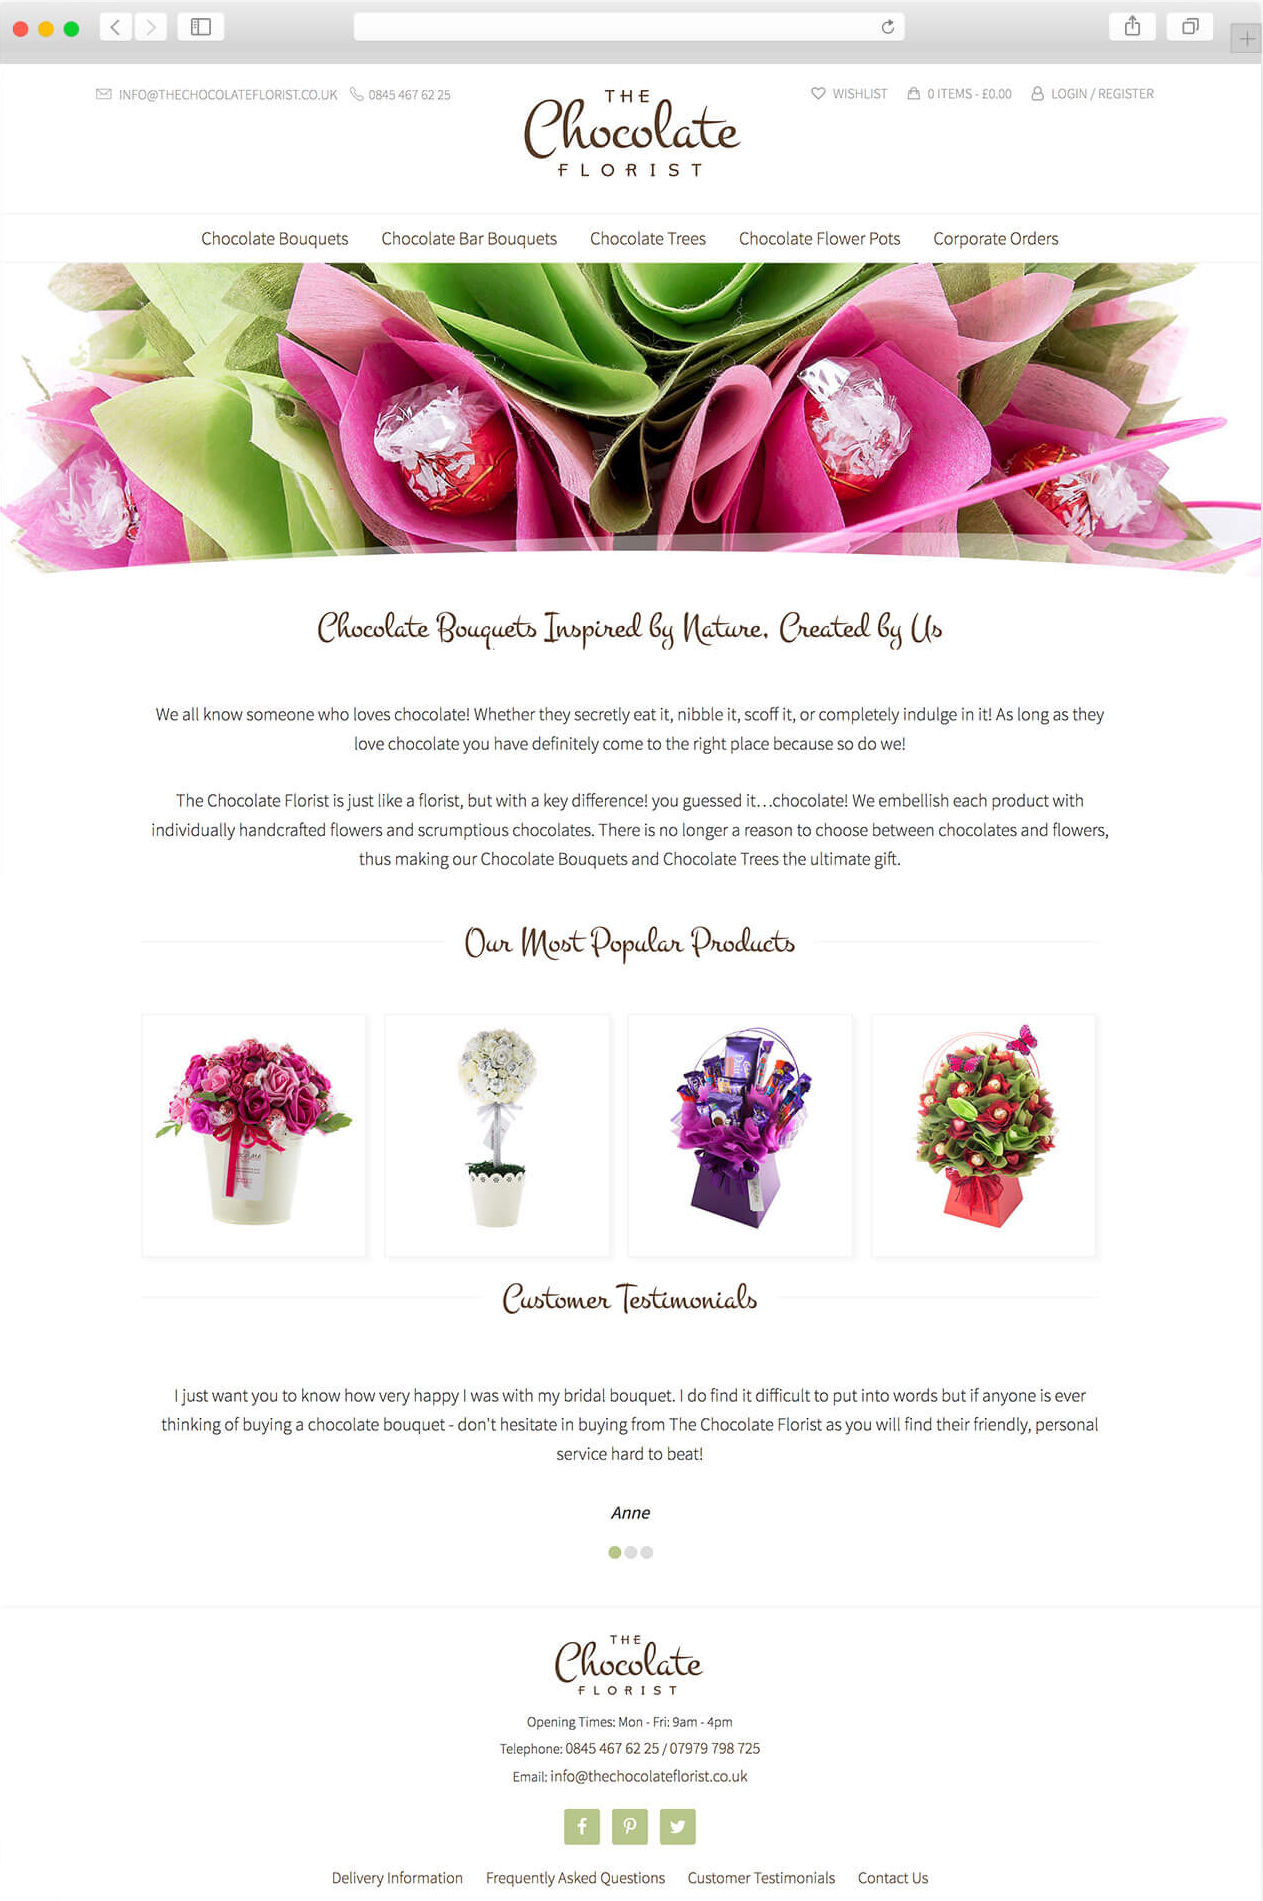 The Chocolate Florist website home page.